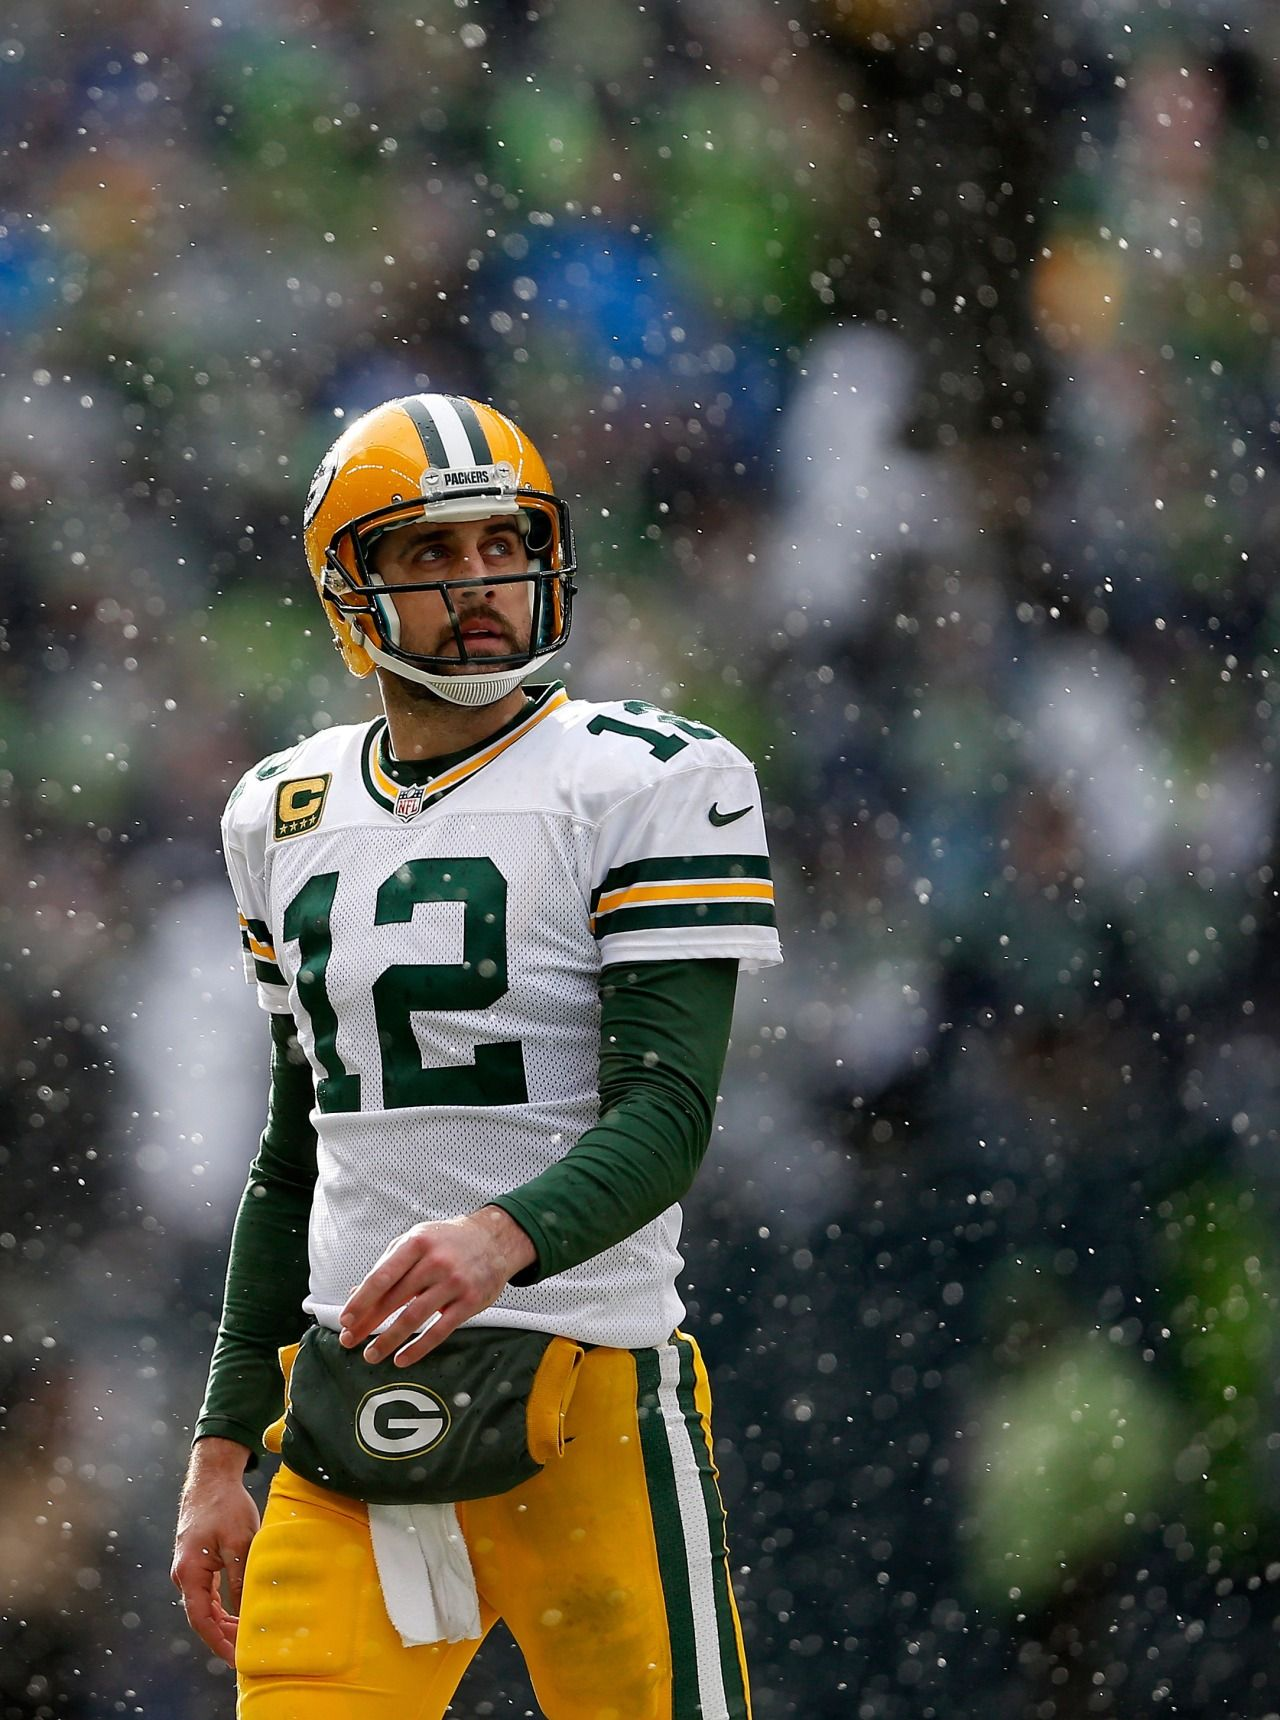 Mr Rodgers On A Snowy Game Day Green Bay Packers Photo Green Bay Packers Green Bay Packers Football Green Bay